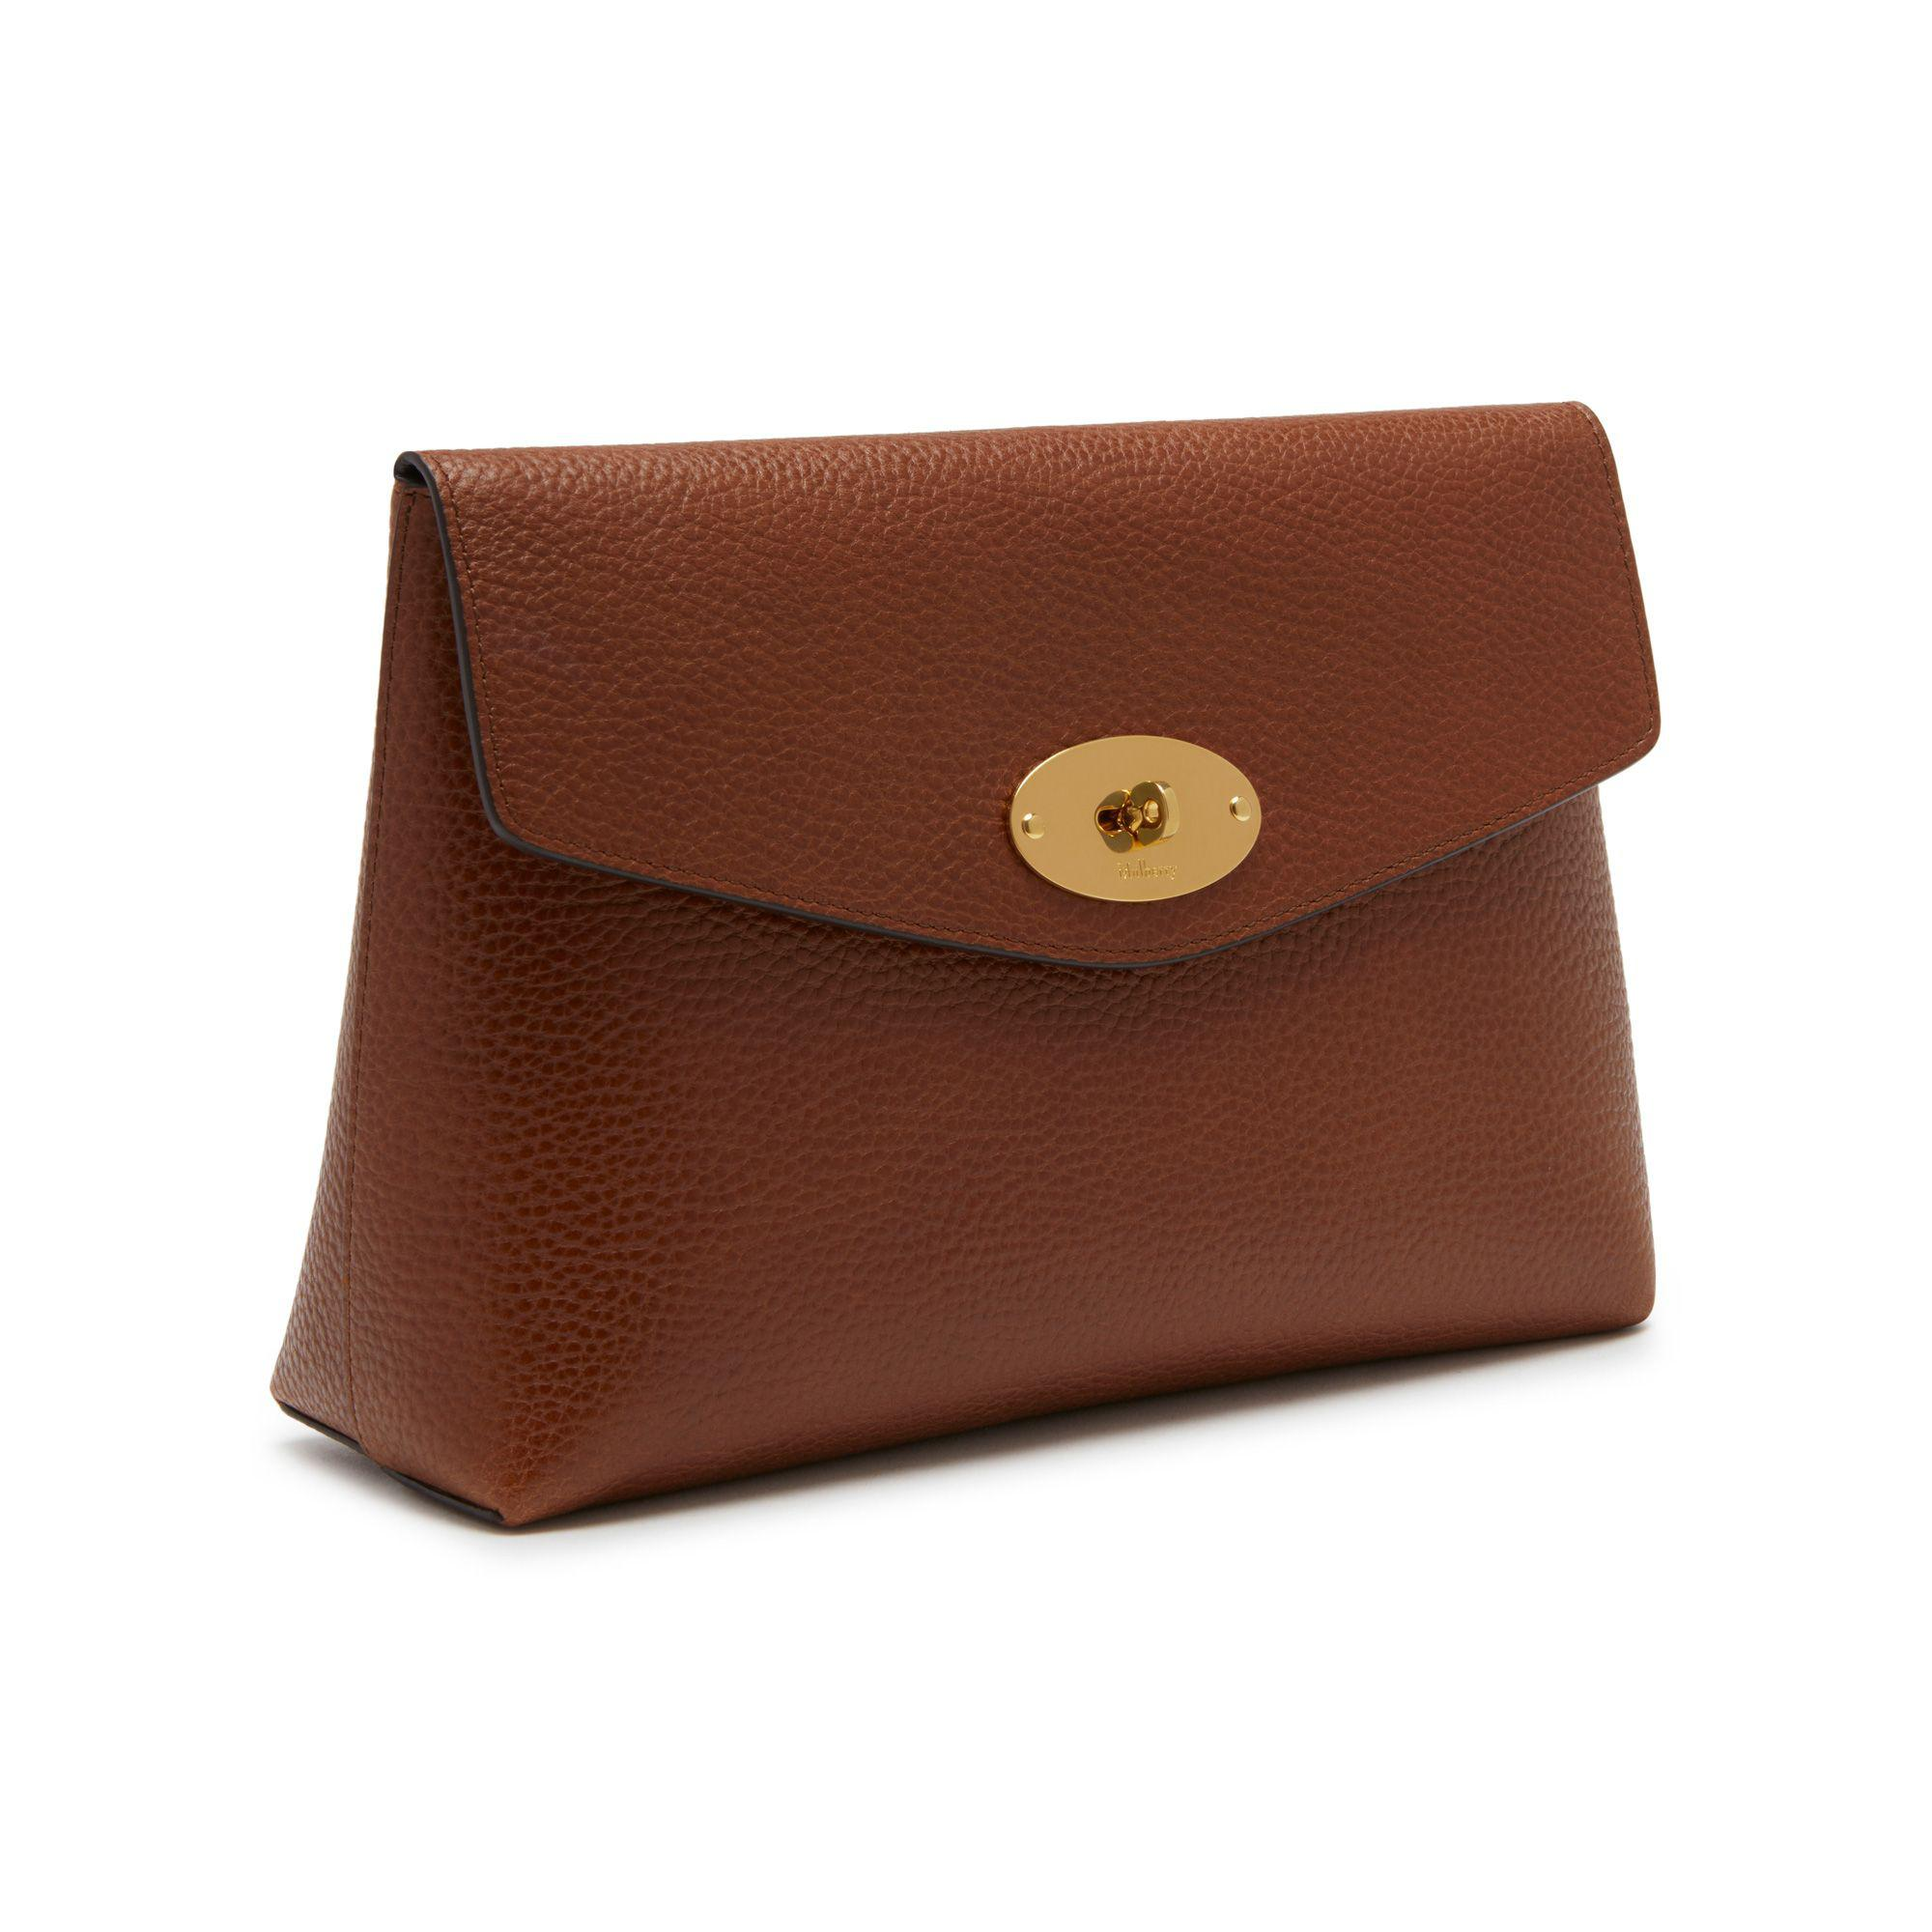 94259a32a1 ... australia mulberry brown large darley cosmetic pouch lyst. view  fullscreen 32606 14a6d